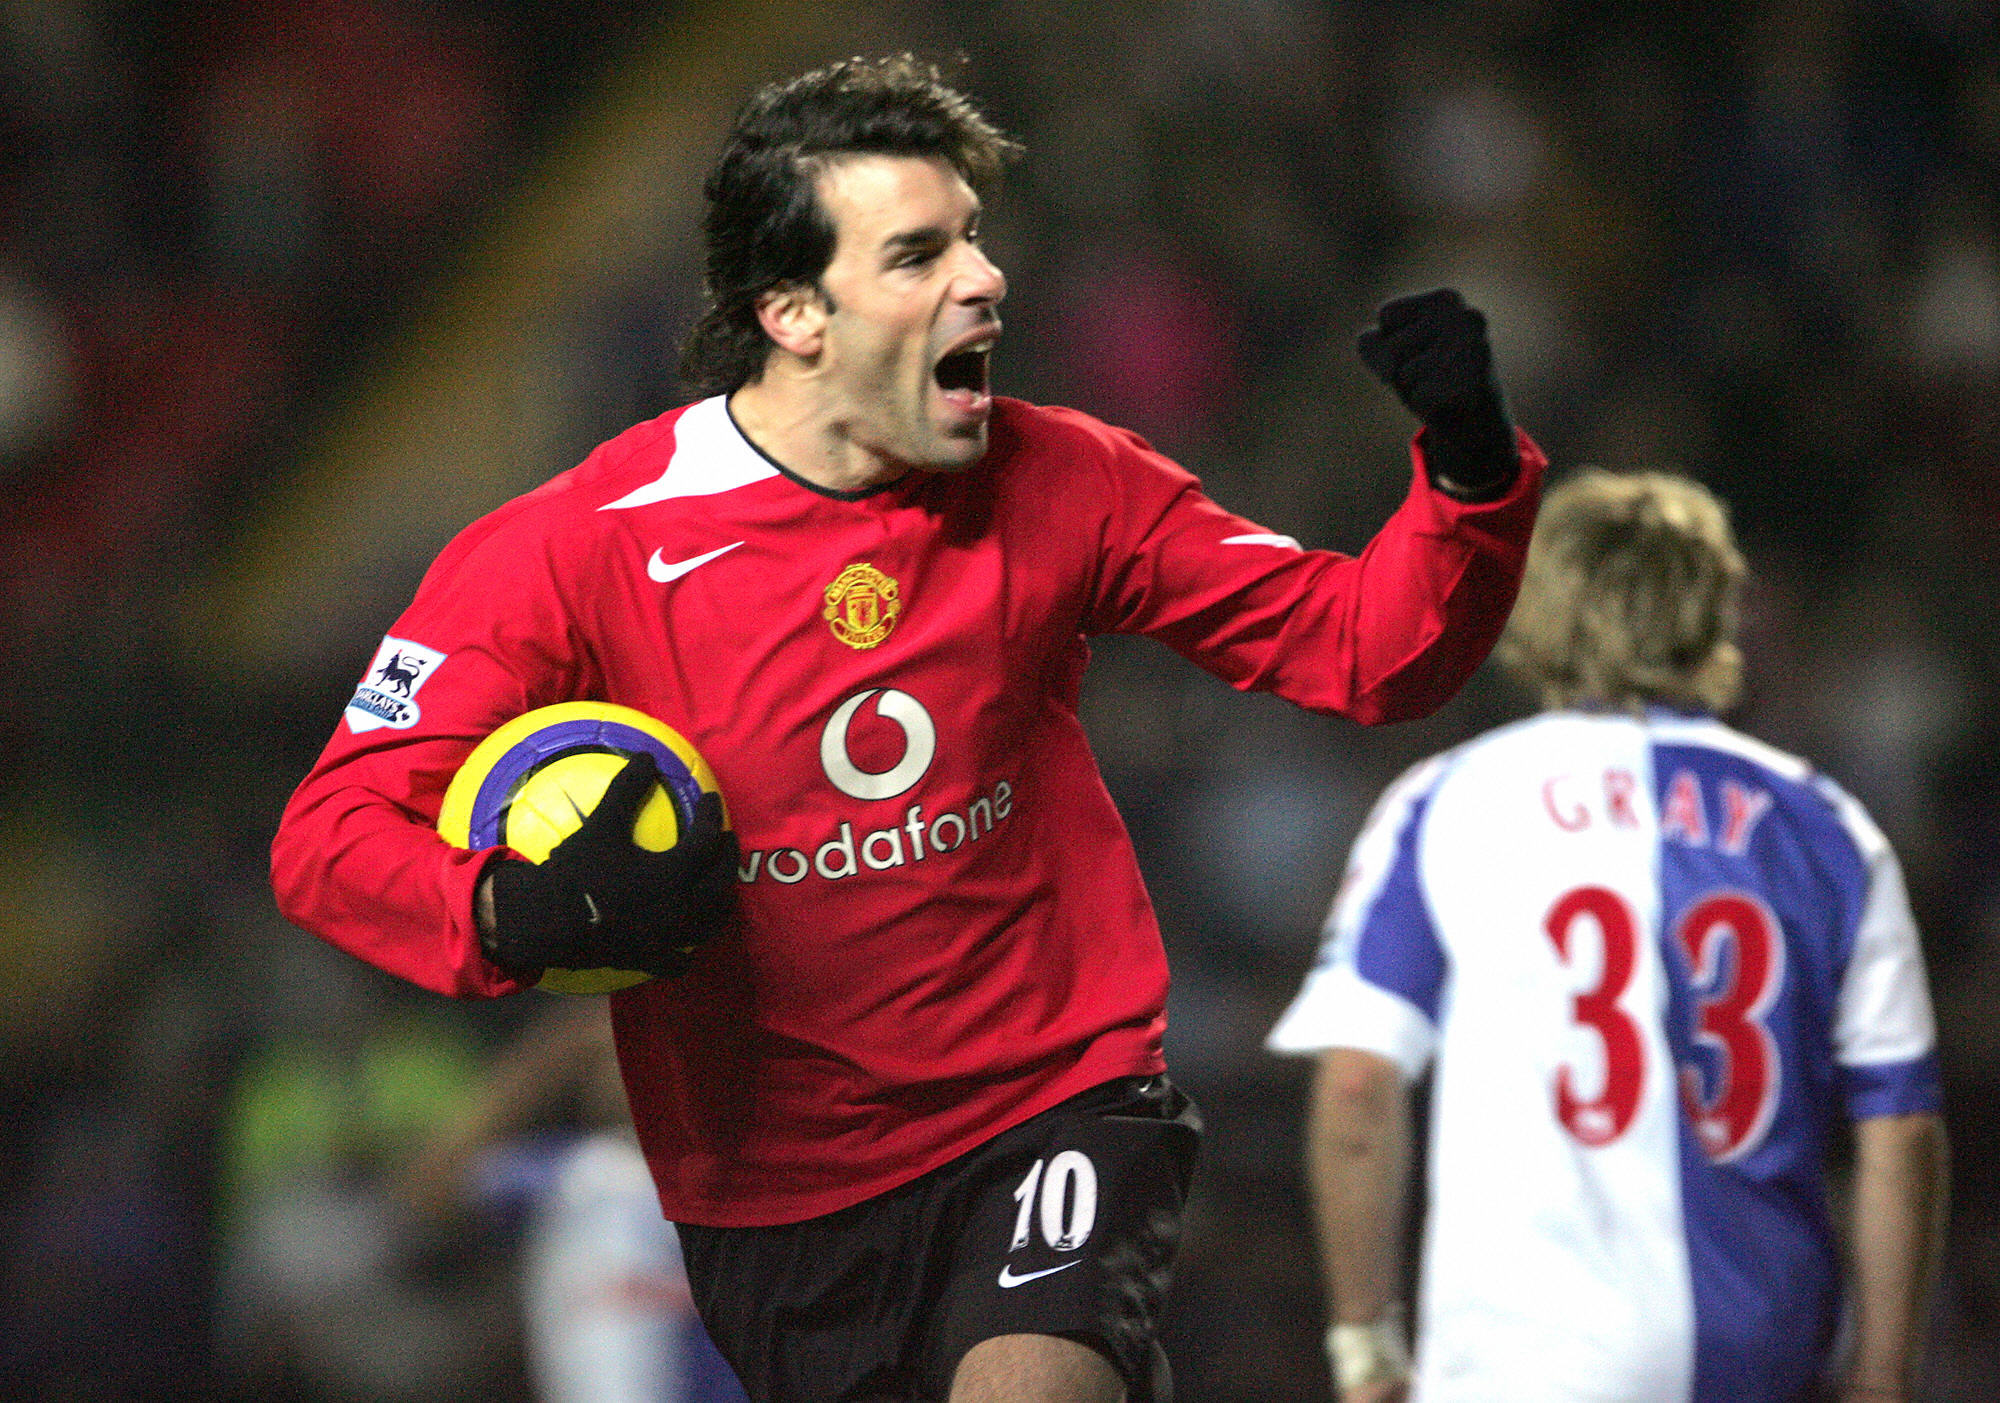 Blackburn, UNITED KINGDOM: Manchester United's Ruud van Nistelrooy celebrates scoring his first goal against Blackburn Rovers during their English Premiership soccer match at Ewood Park, Blackburn, England, 01 February 2006. AFP PHOTO/PAUL ELLIS Mobile and website use of domestic English football pictures subject to subscription of a license with Football Association Premier League (FAPL) tel : +44 207 298 1656. For newspapers where the football content of the printed and electronic versions are identical, no licence is necessary. (Photo credit should read PAUL ELLIS/AFP/Getty Images)